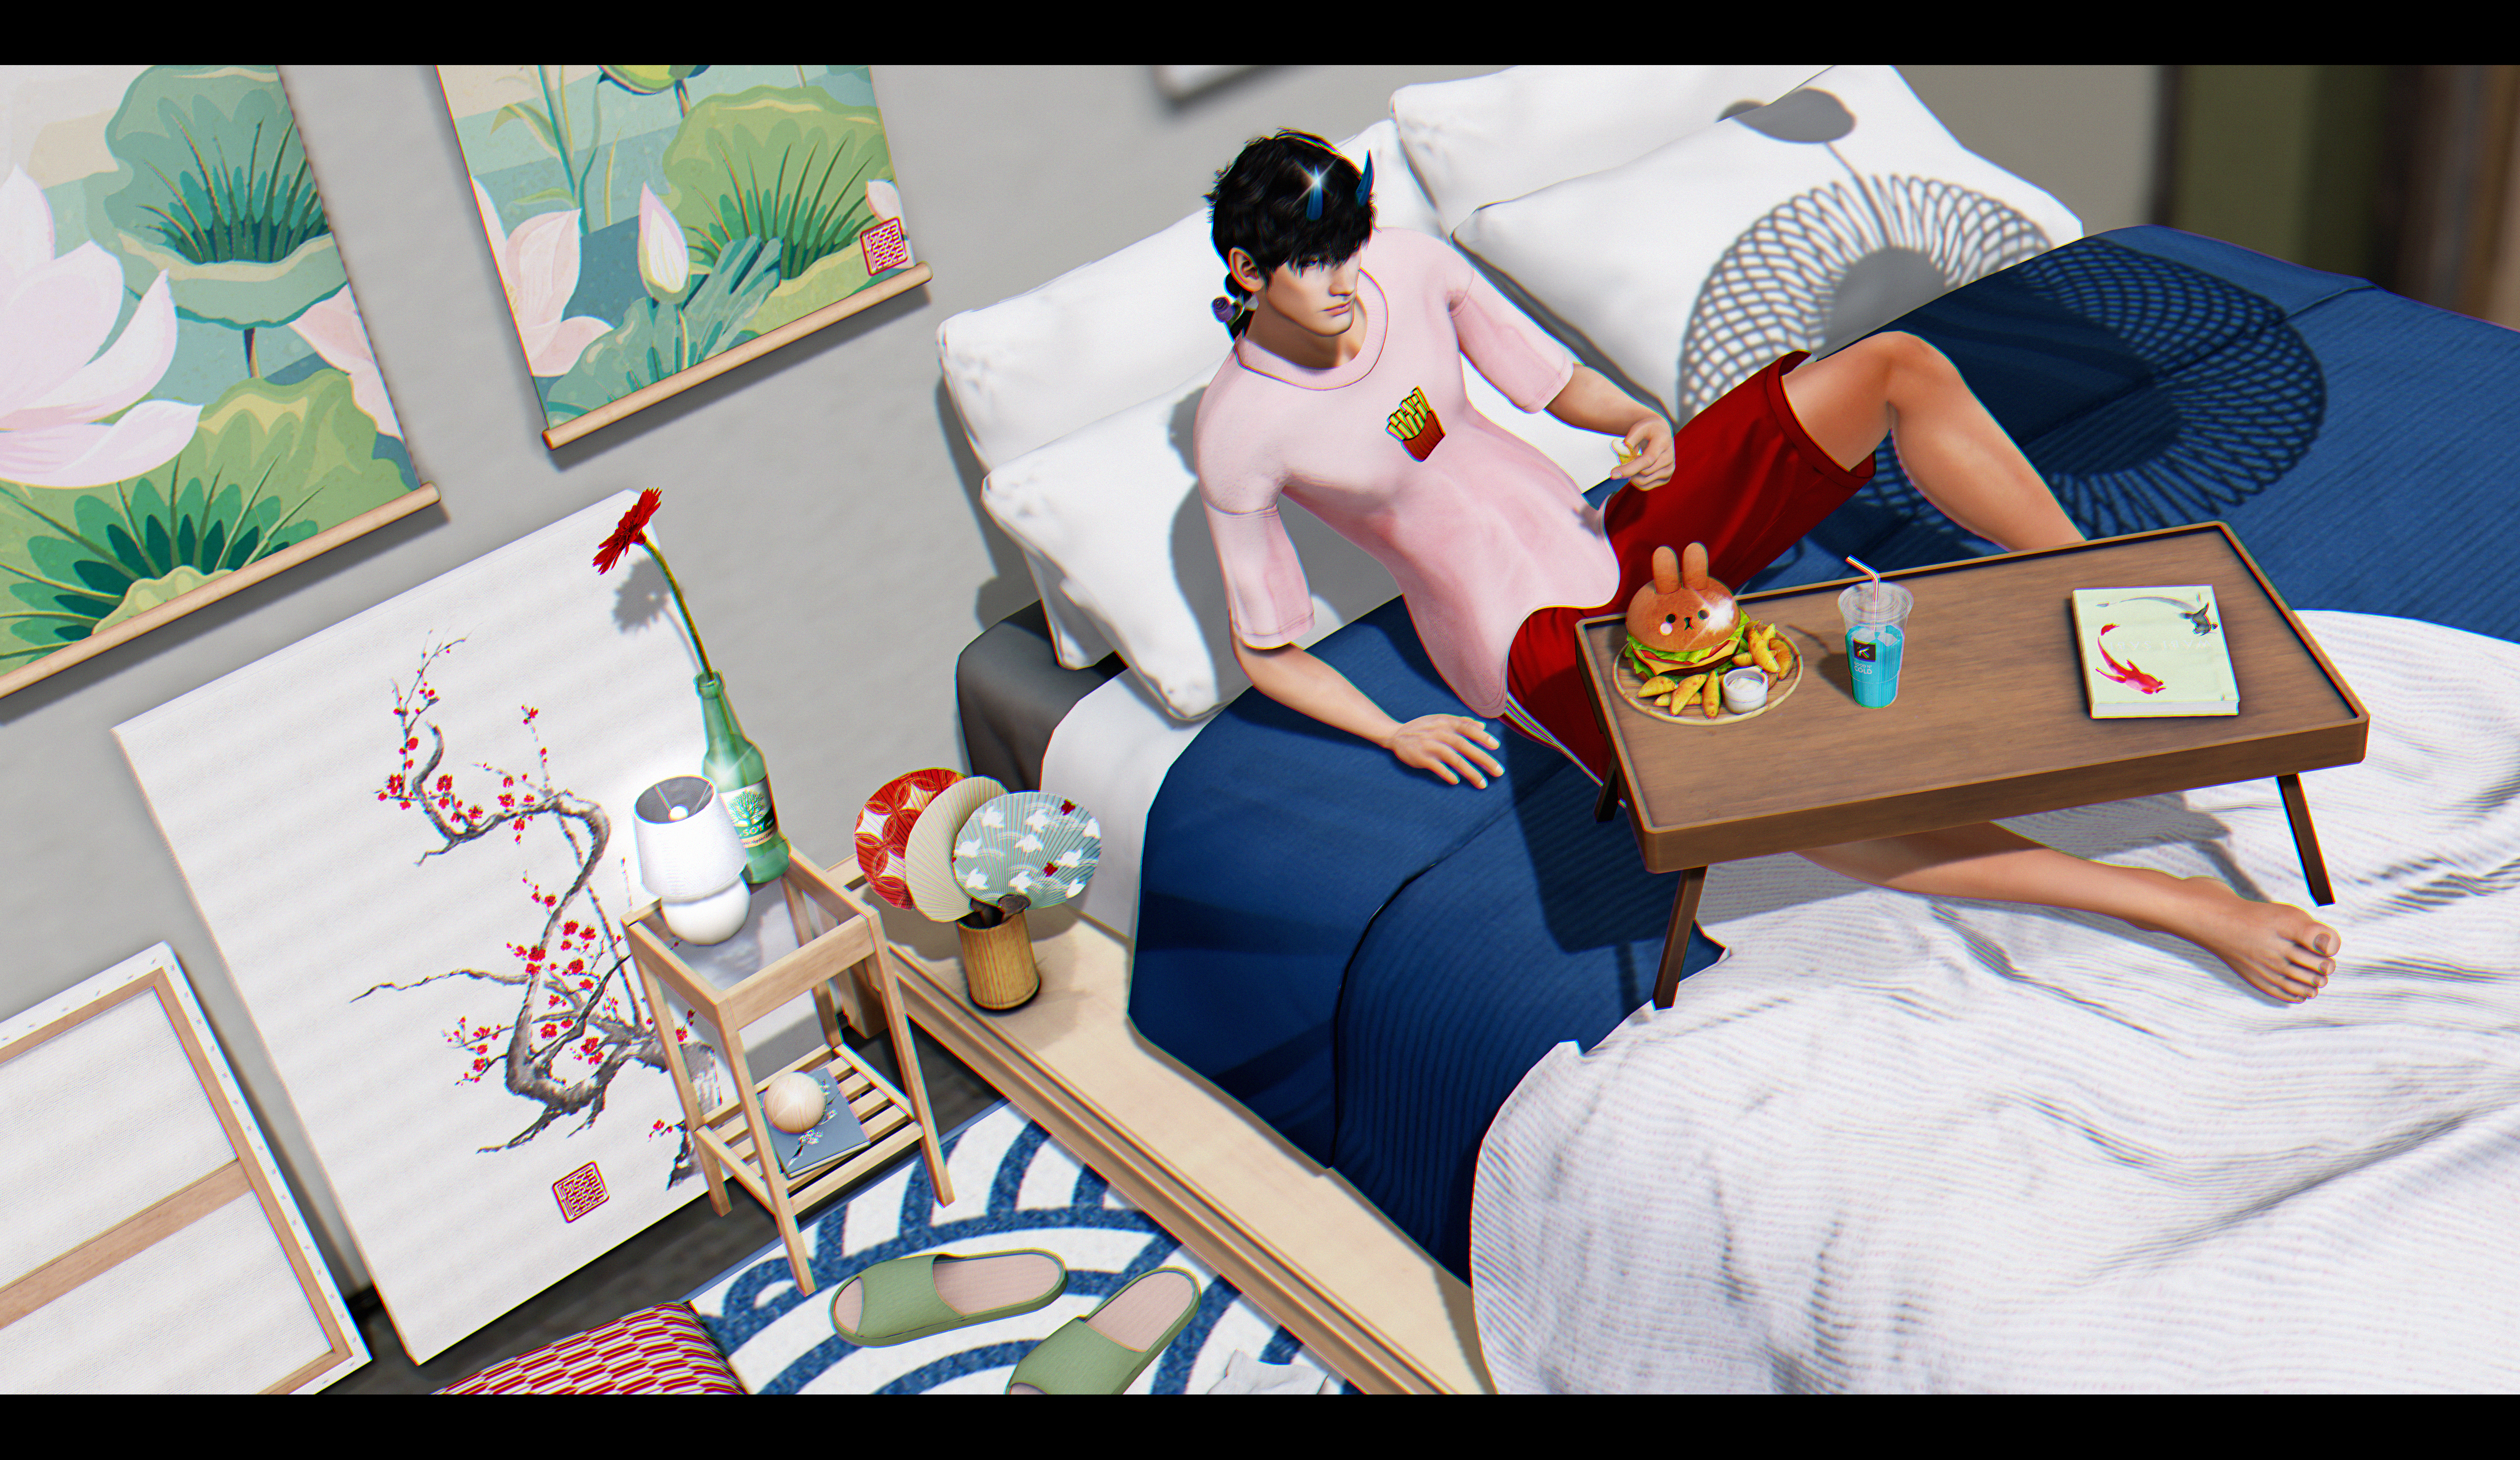 . eating in bed .